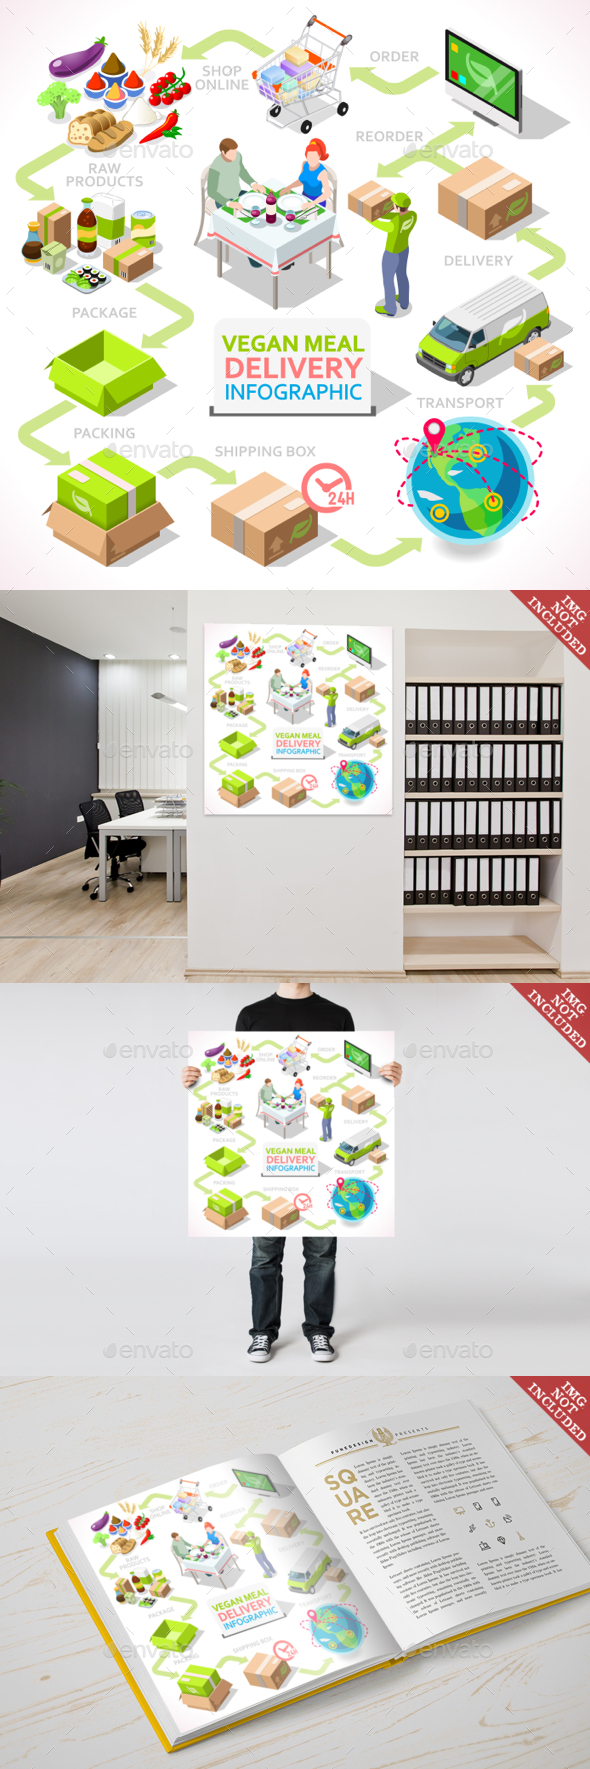 Delivery 03 Infographic Isometric - Business Conceptual